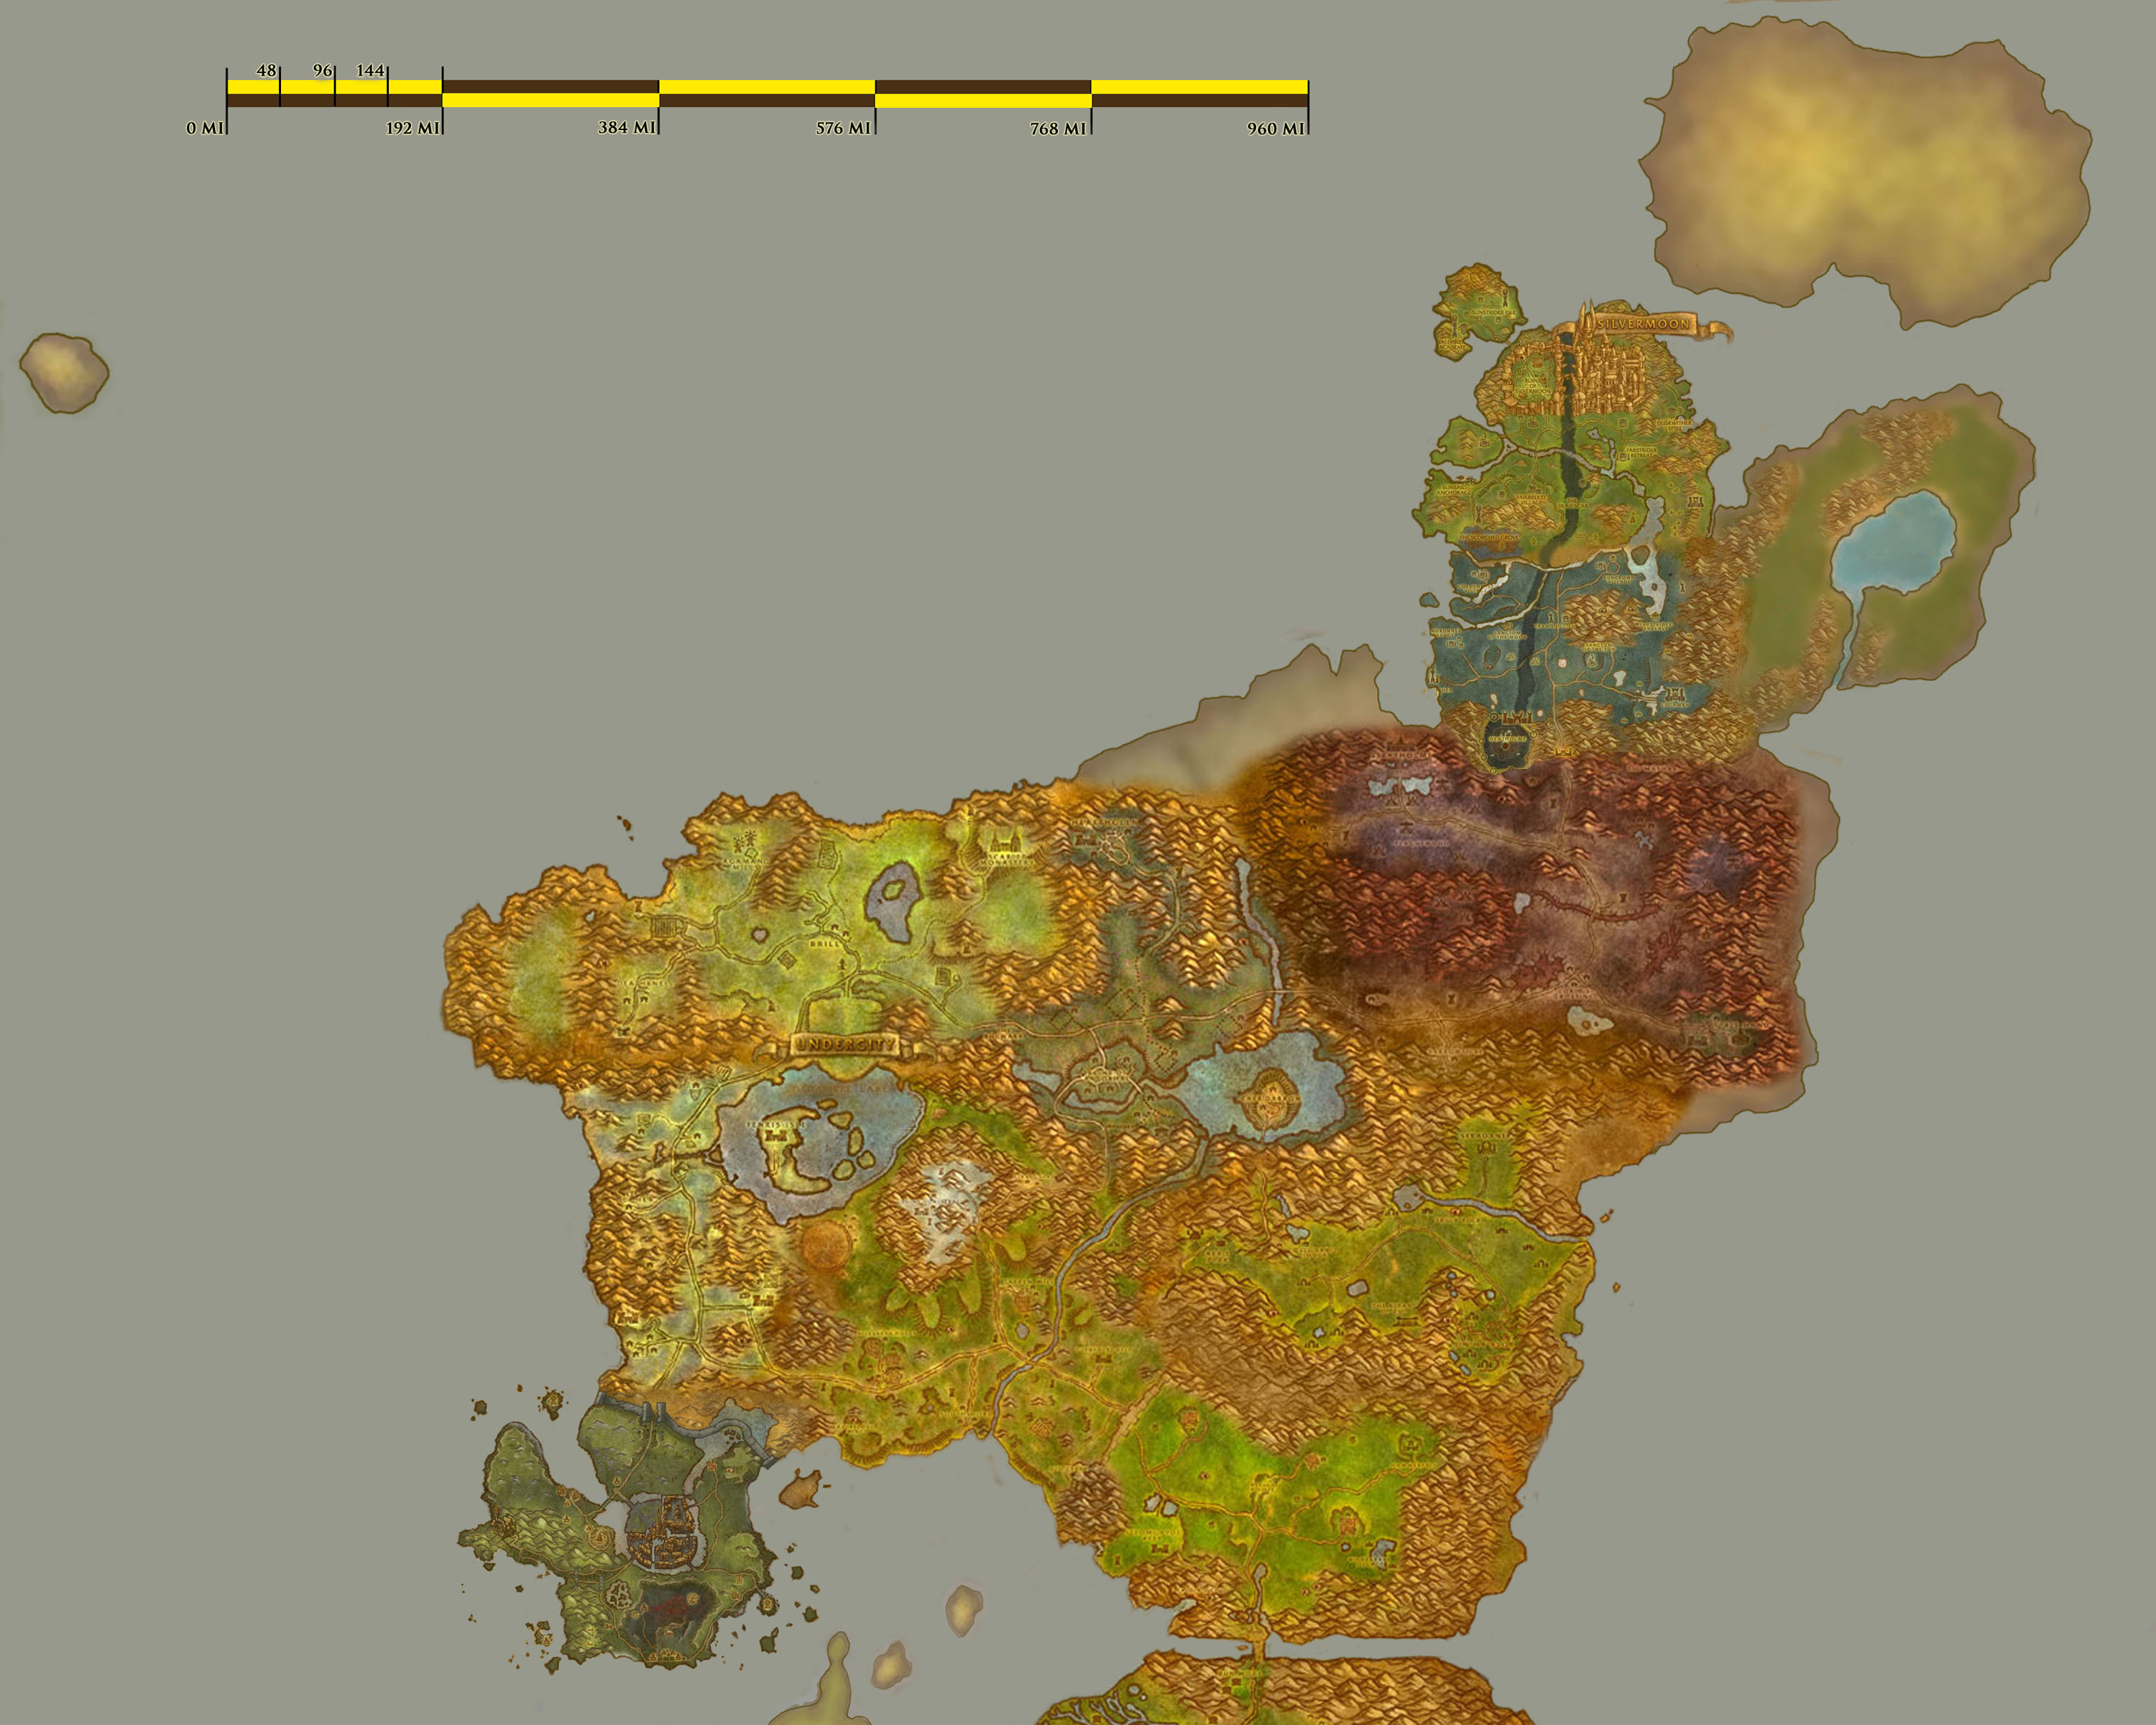 Greywolfs world of warcraft fan site travel eastern kingdoms map no labels part a gumiabroncs Image collections